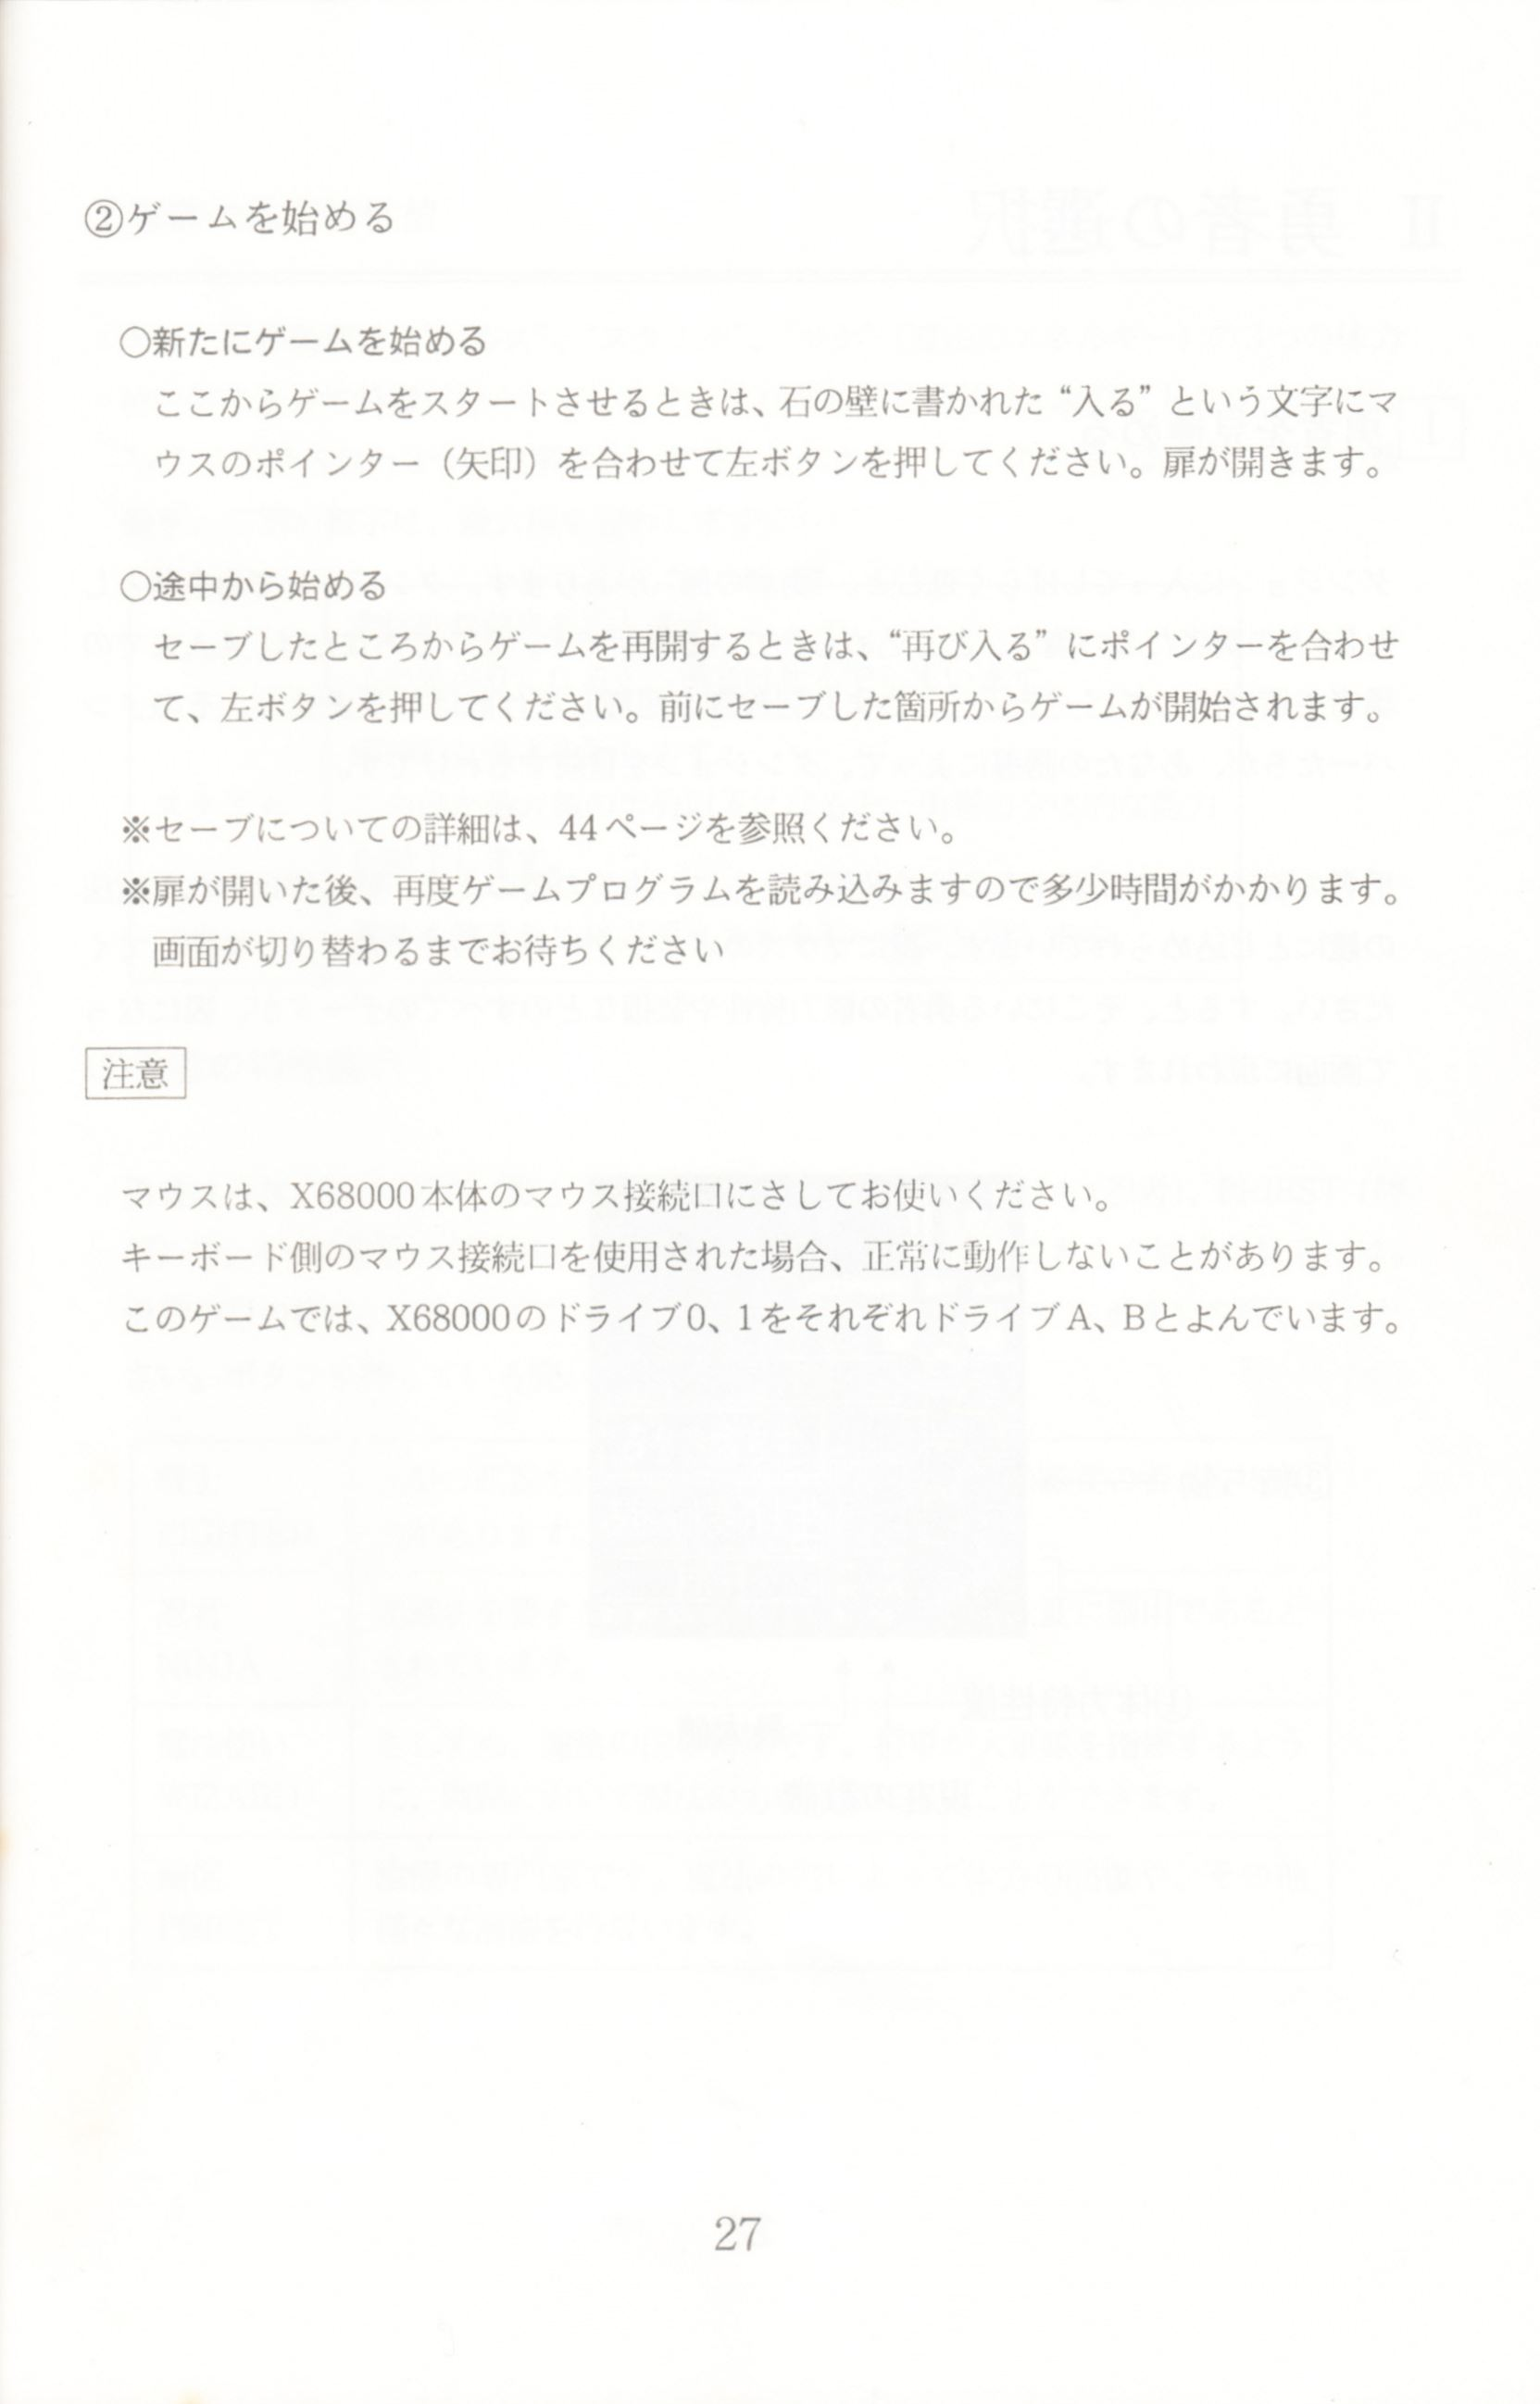 Game - Dungeon Master - JP - X68000 - Manual - Page 029 Without Sticker - Scan